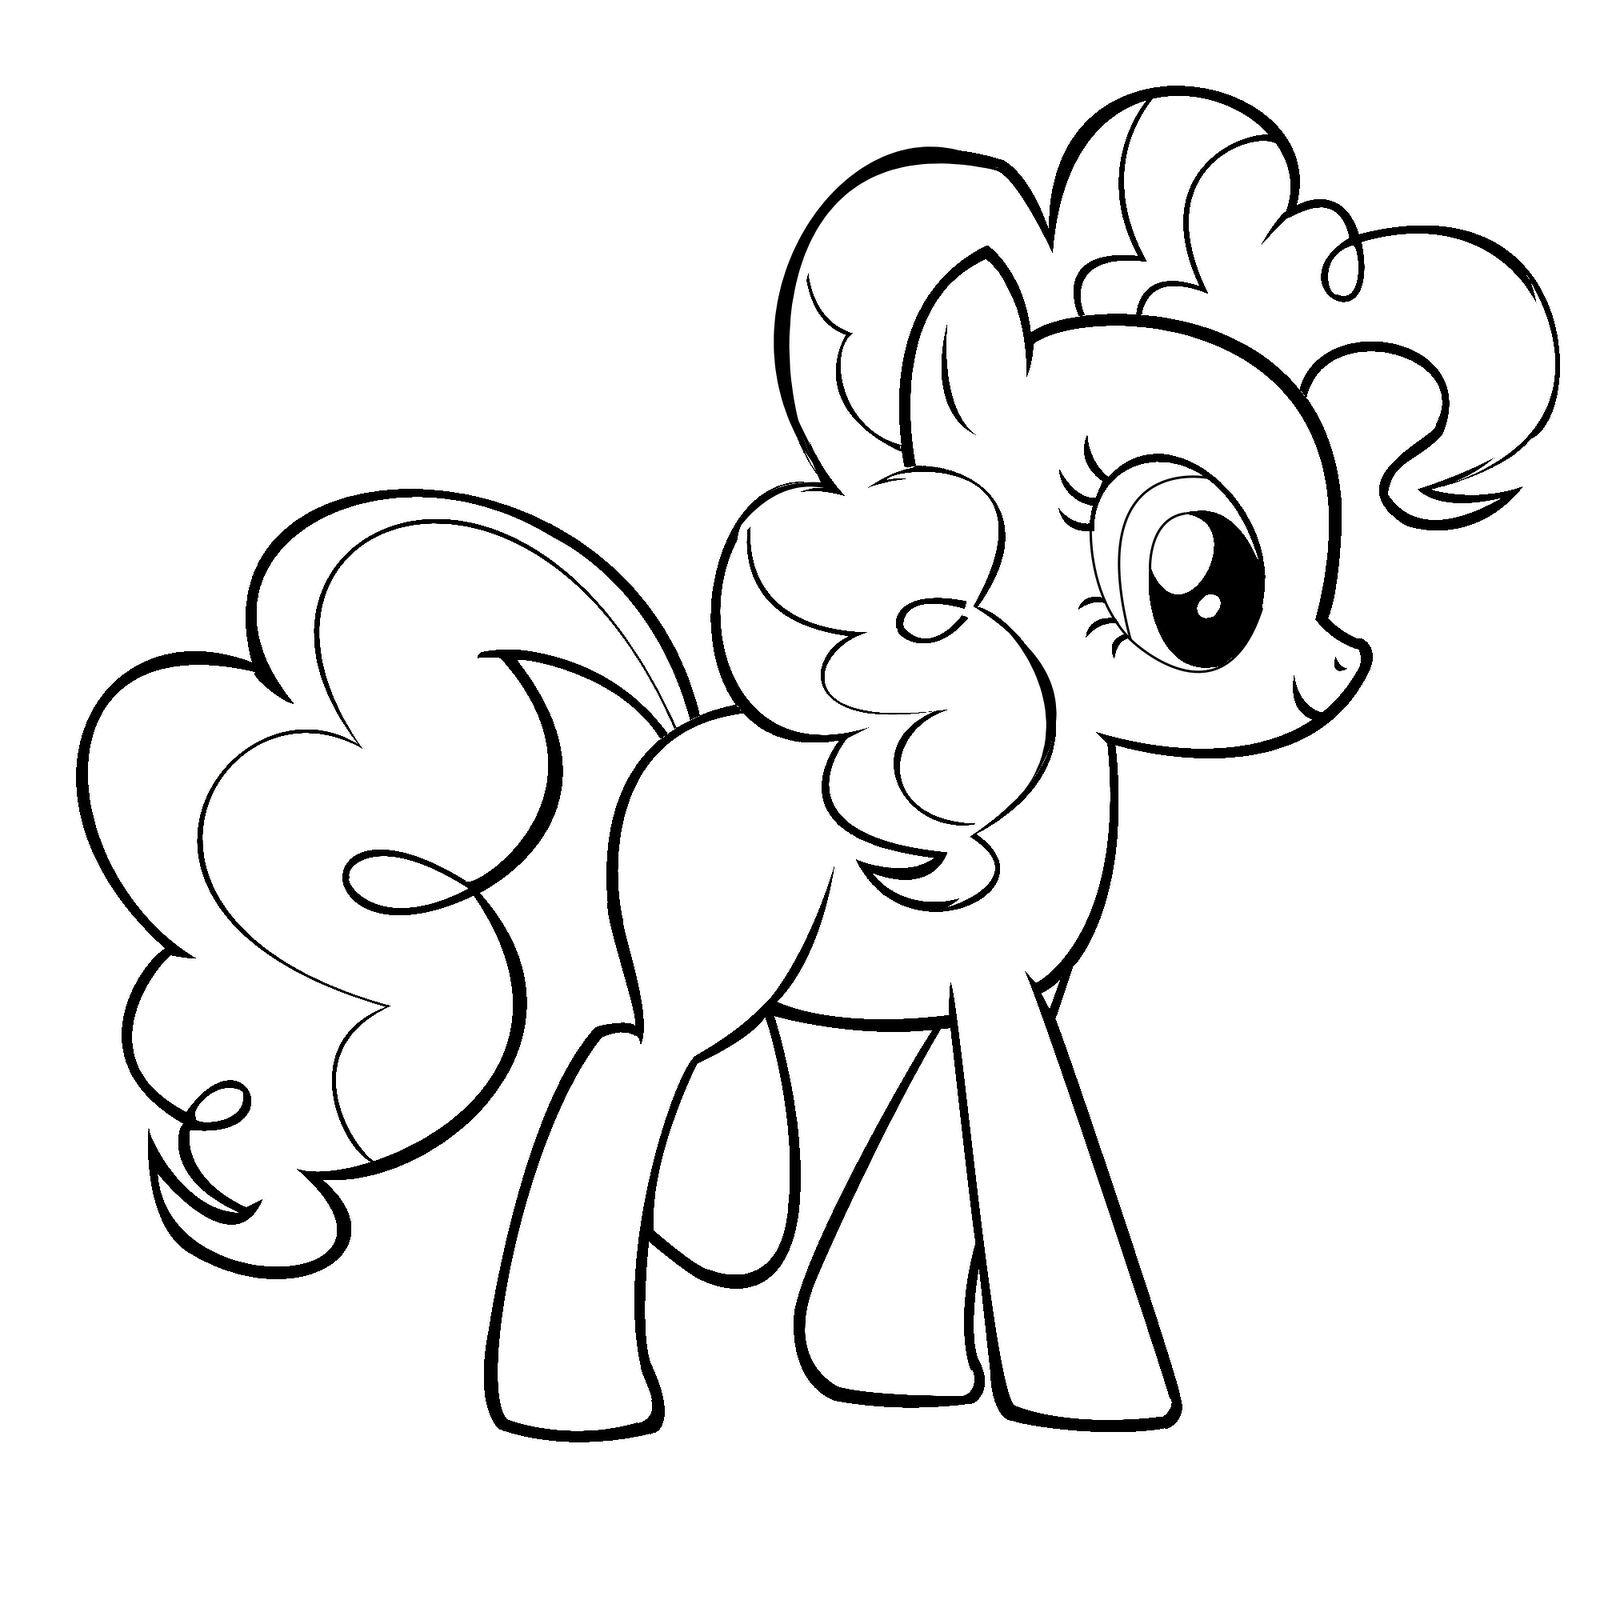 my lil pony coloring pages my little pony coloring pages coloring pages for kids lil pages coloring pony my